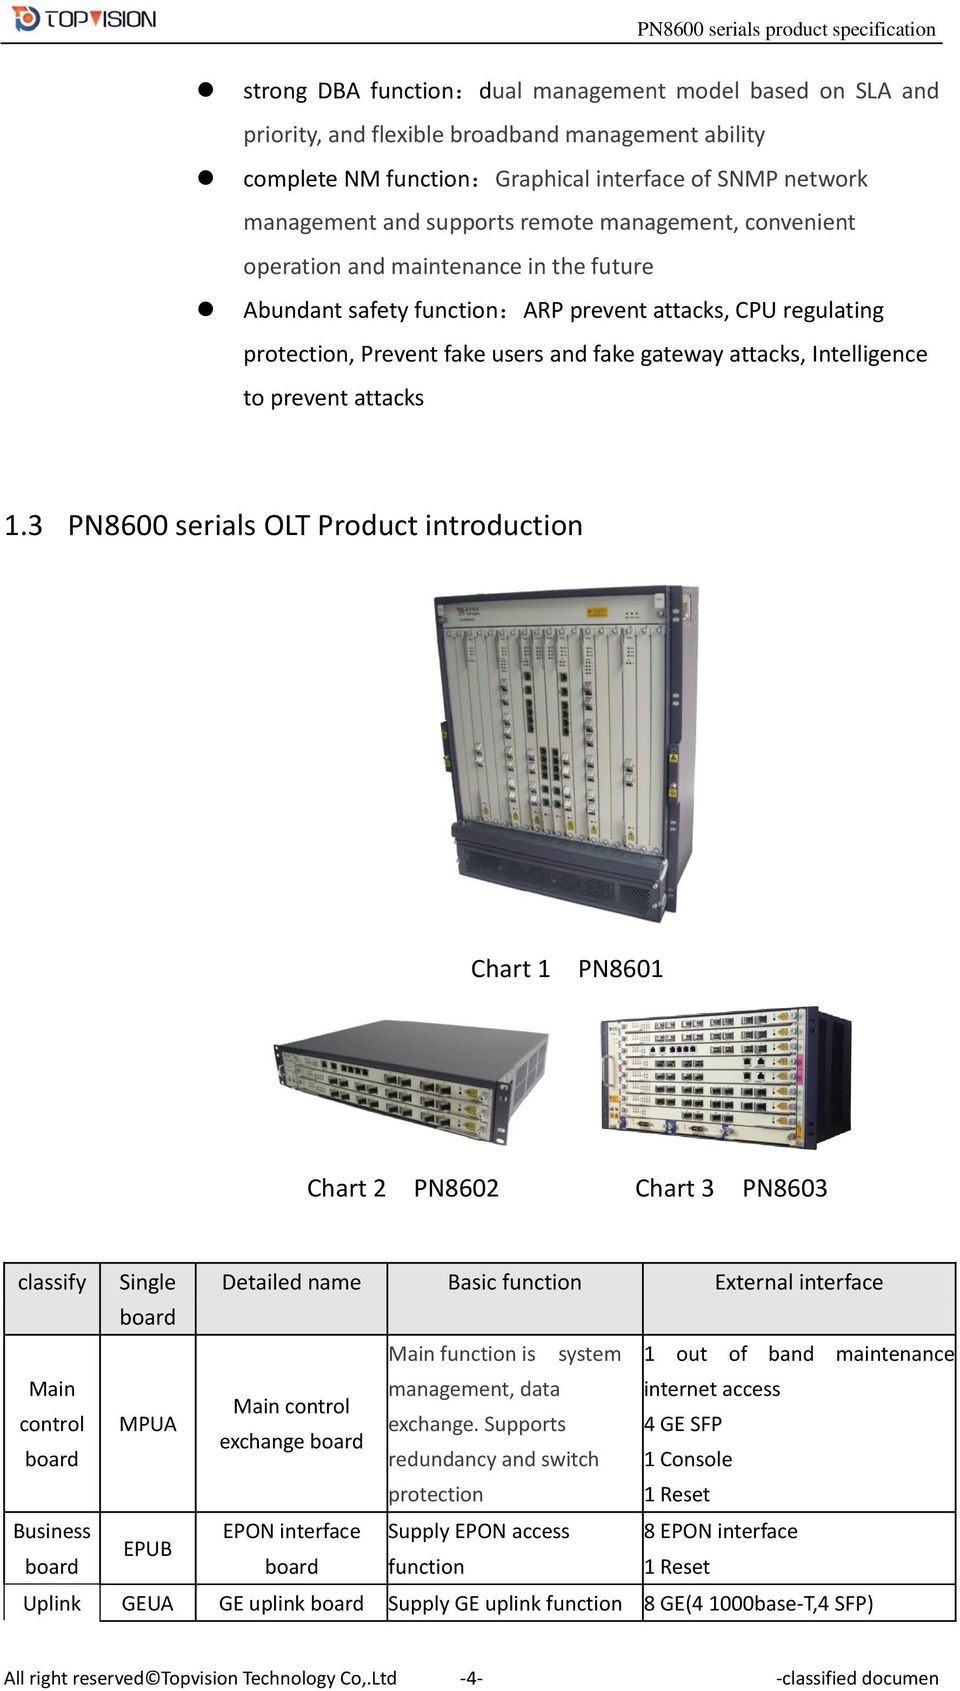 PN8600 Serials  Product Specification  Topvision Technology